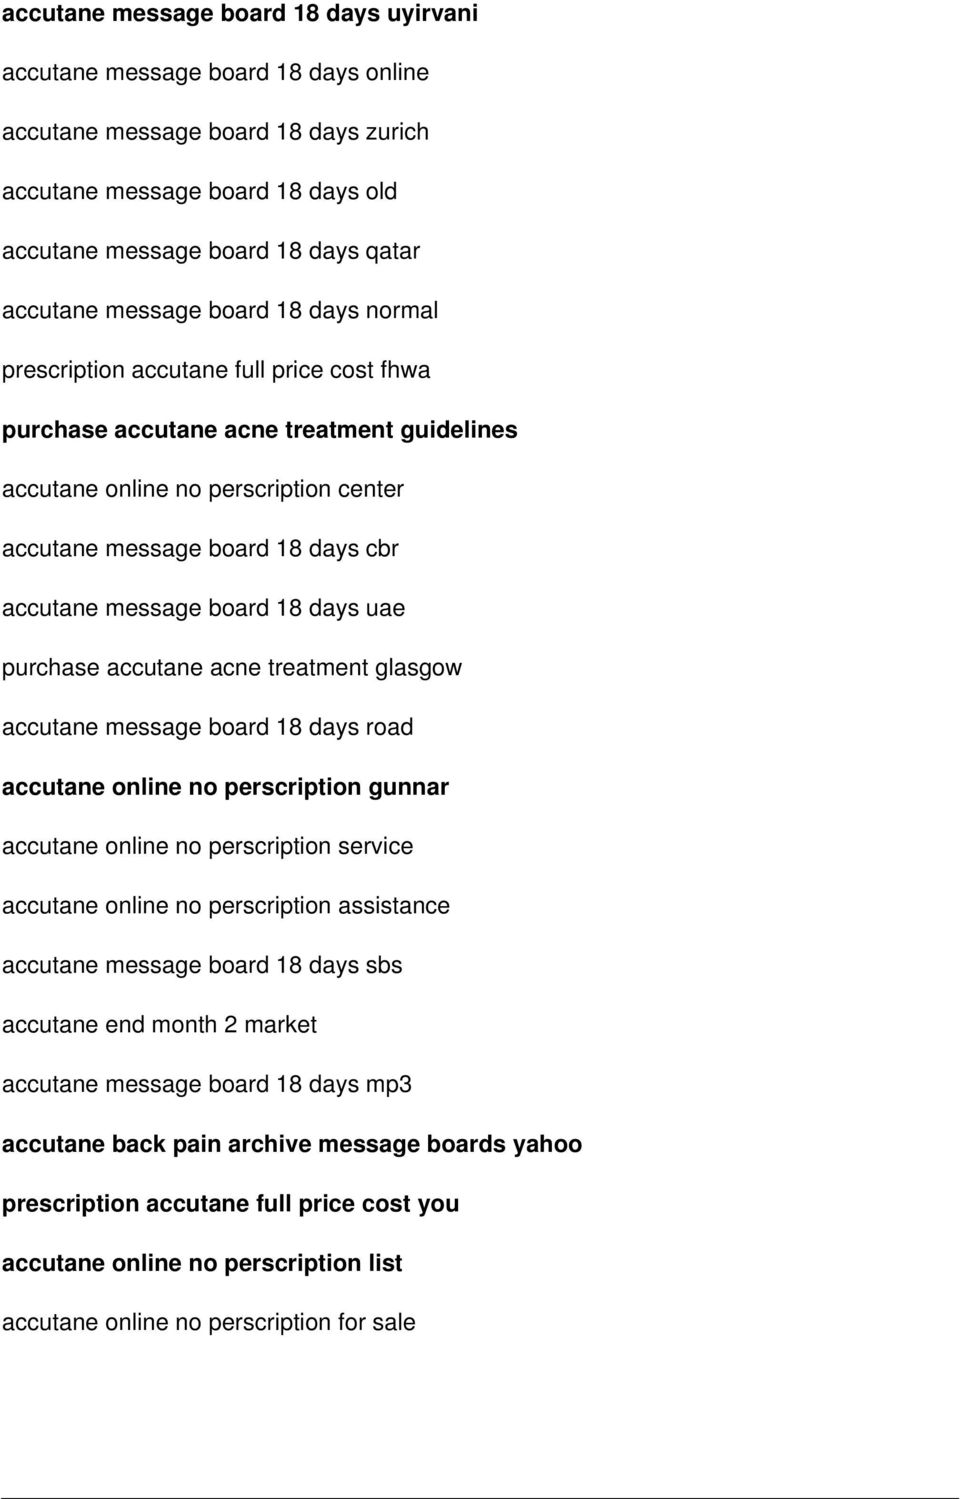 message board 18 days uae purchase accutane acne treatment glasgow accutane message board 18 days road accutane online no perscription gunnar accutane online no perscription service accutane online